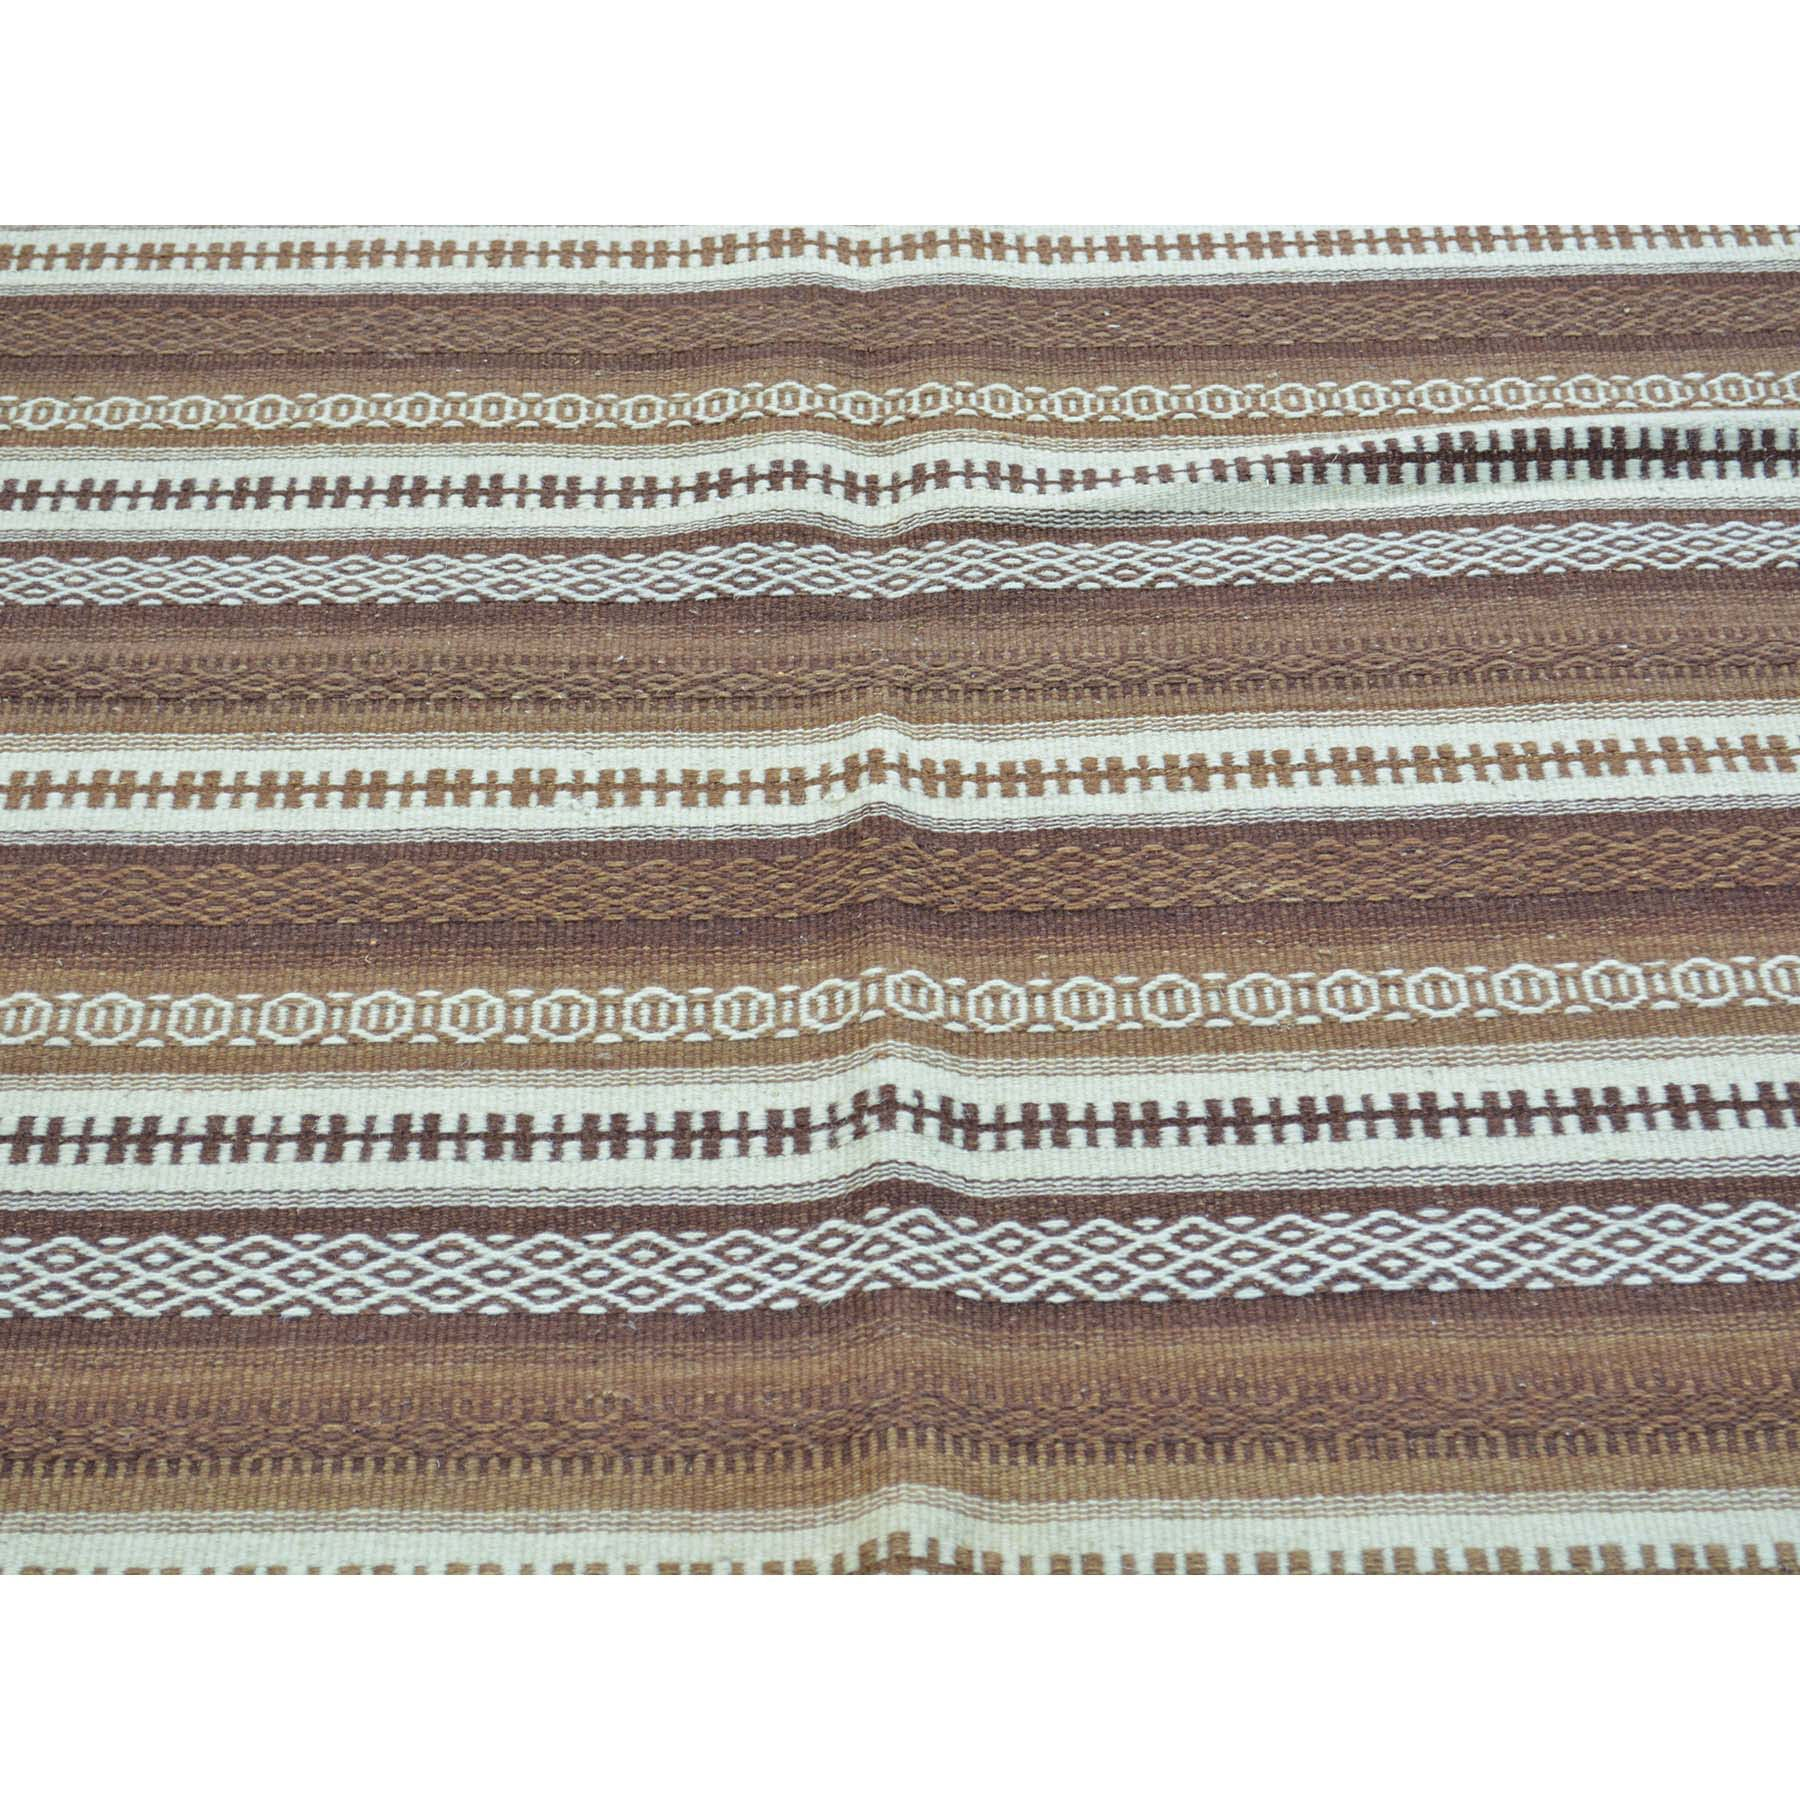 "Handmade Flat Weave Rectangle Rug > Design# SH30016 > Size: 4'-0"" x 6'-0"" [ONLINE ONLY]"